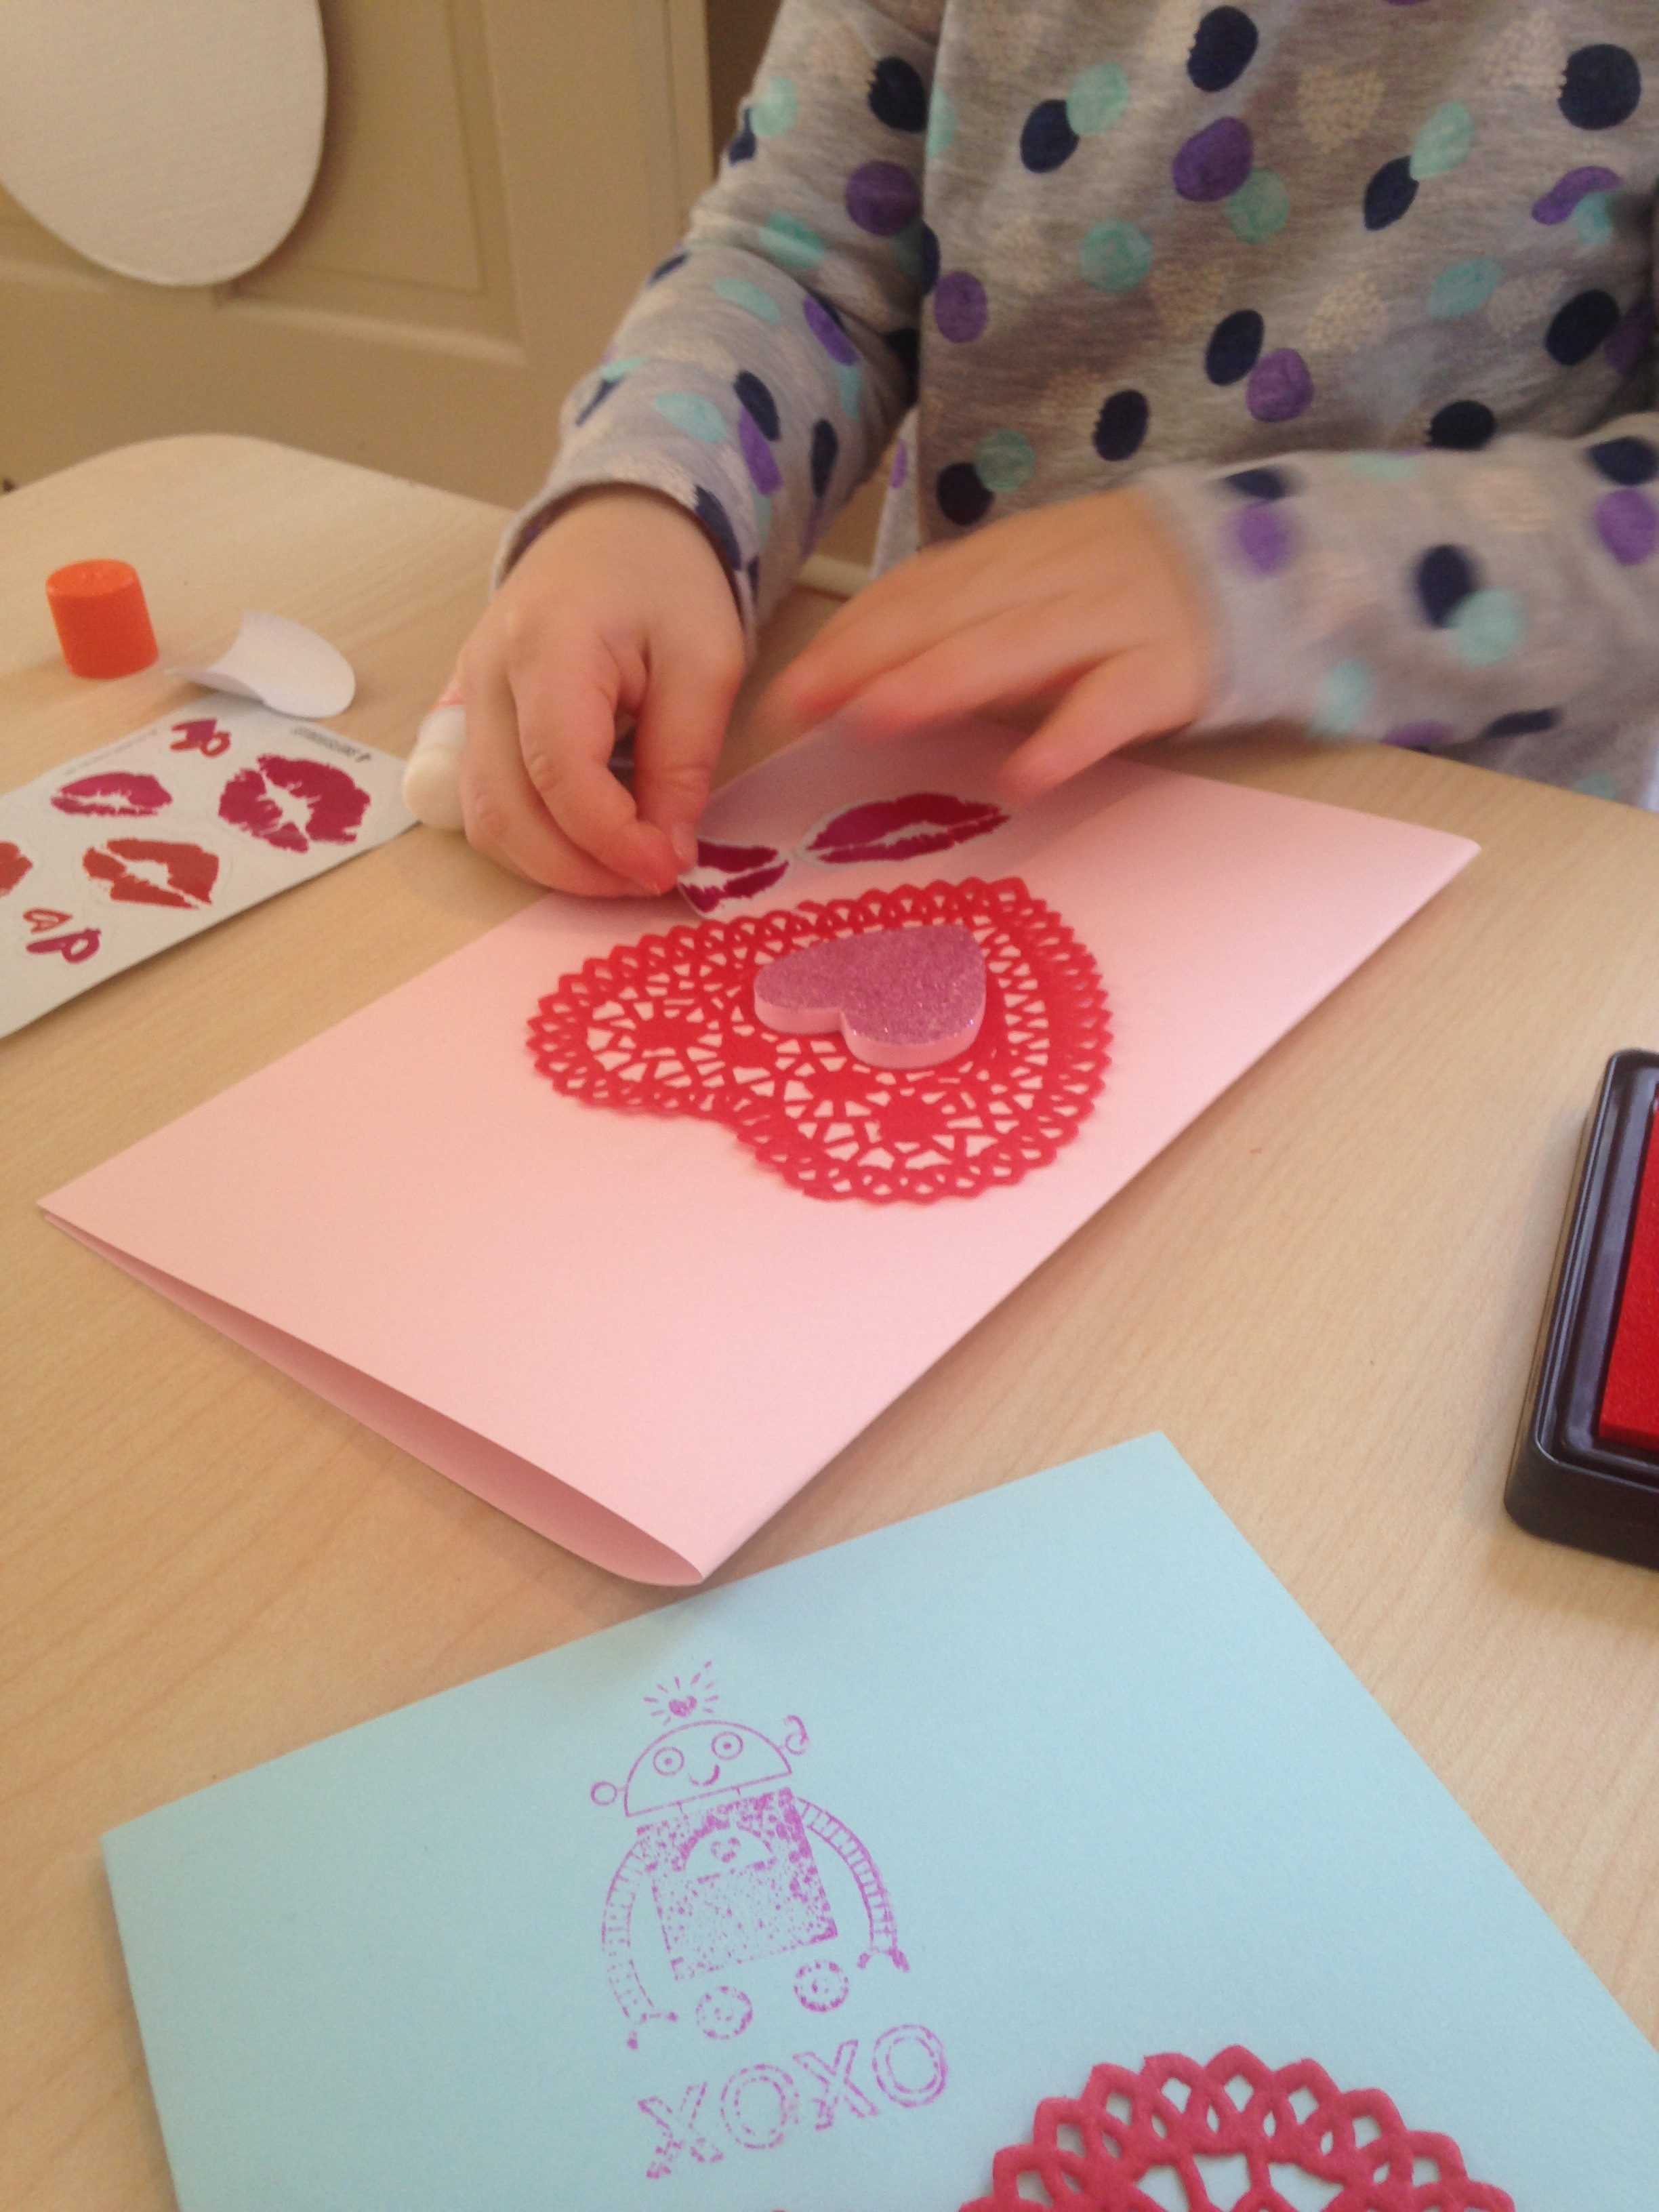 Creating Valentine's Day cards!